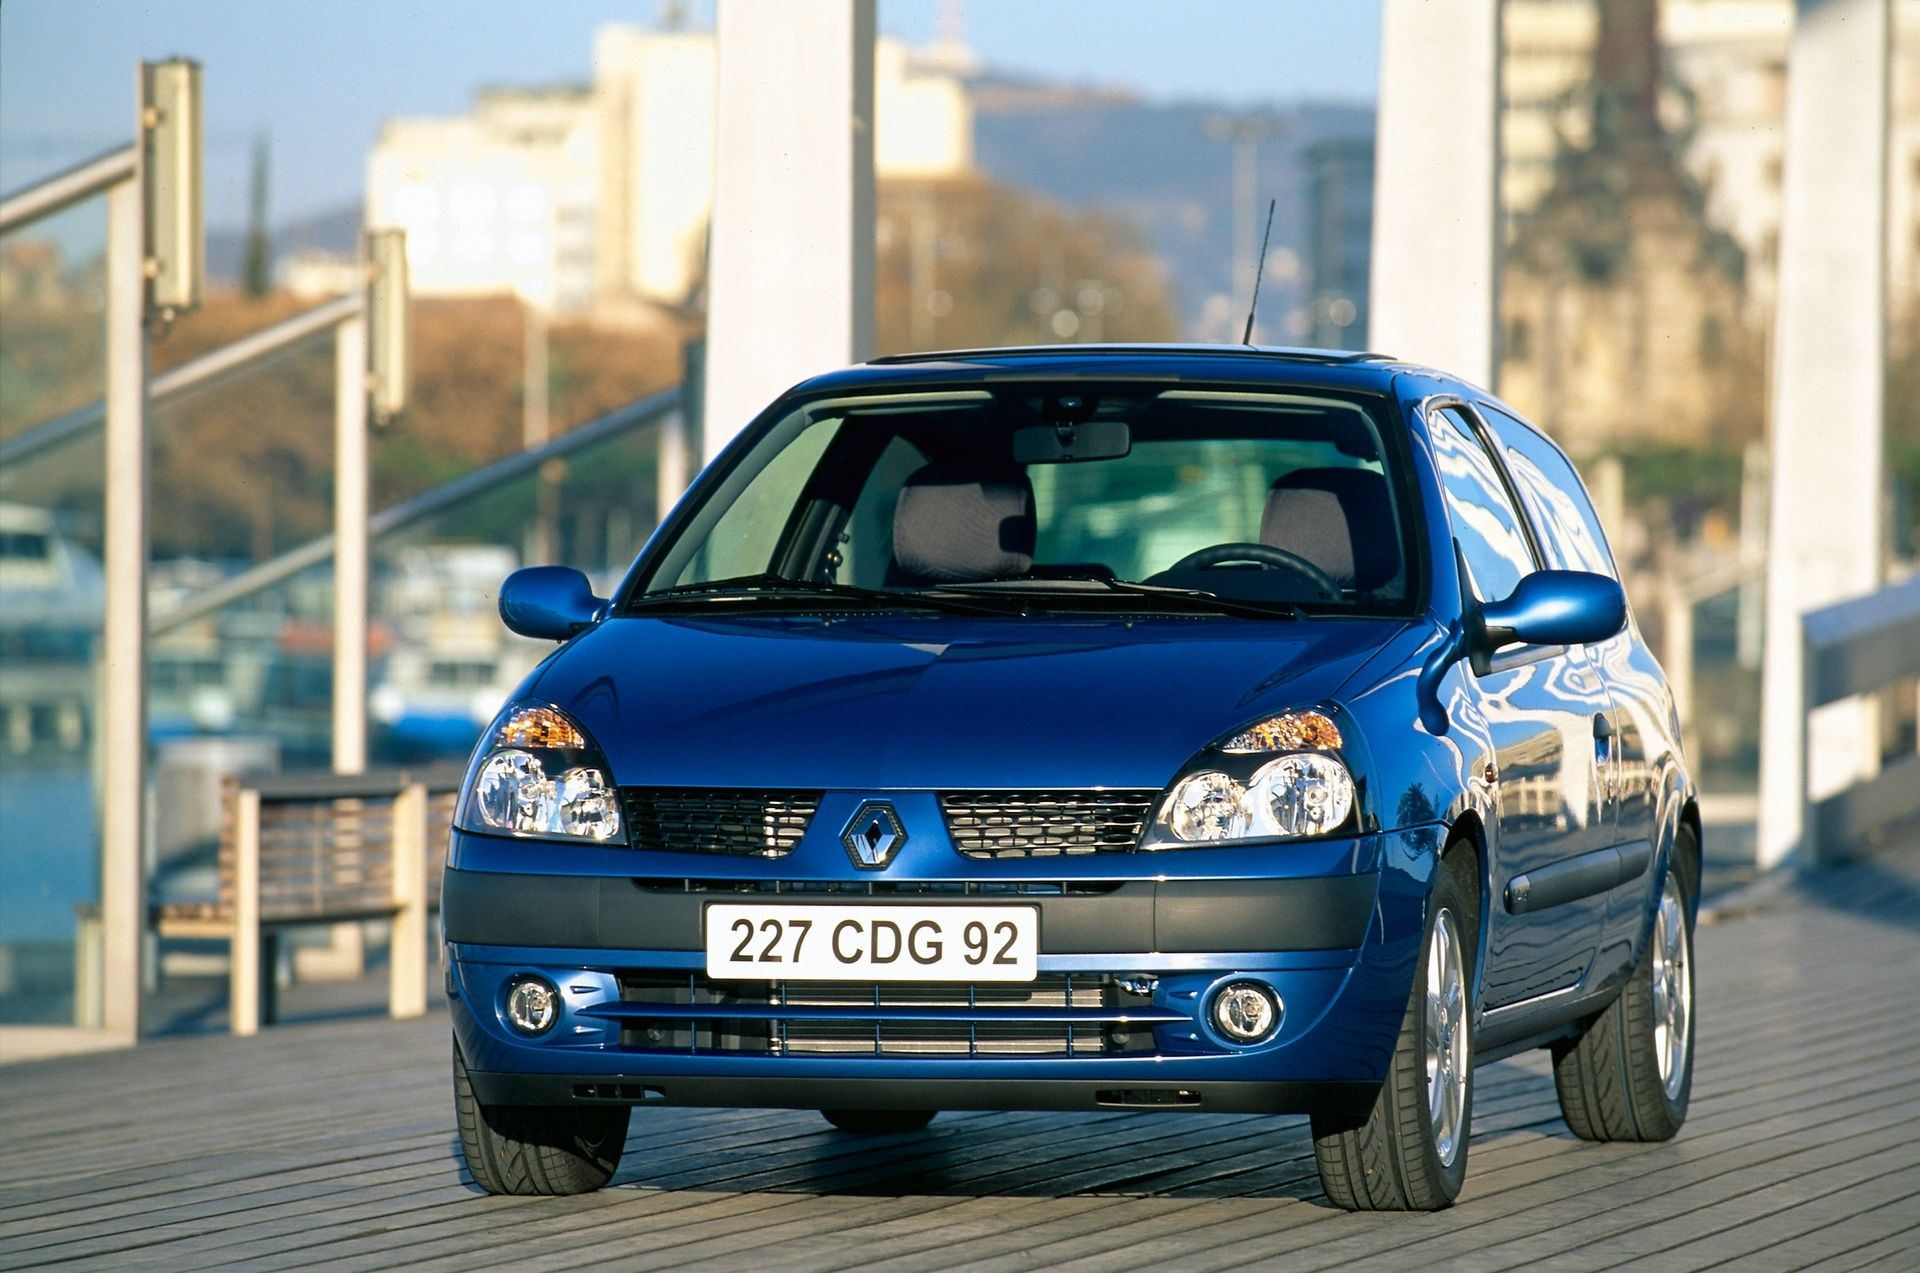 2020-30-years-of-Renault-CLIO-Renault-CLIO-2-1998-2005-6